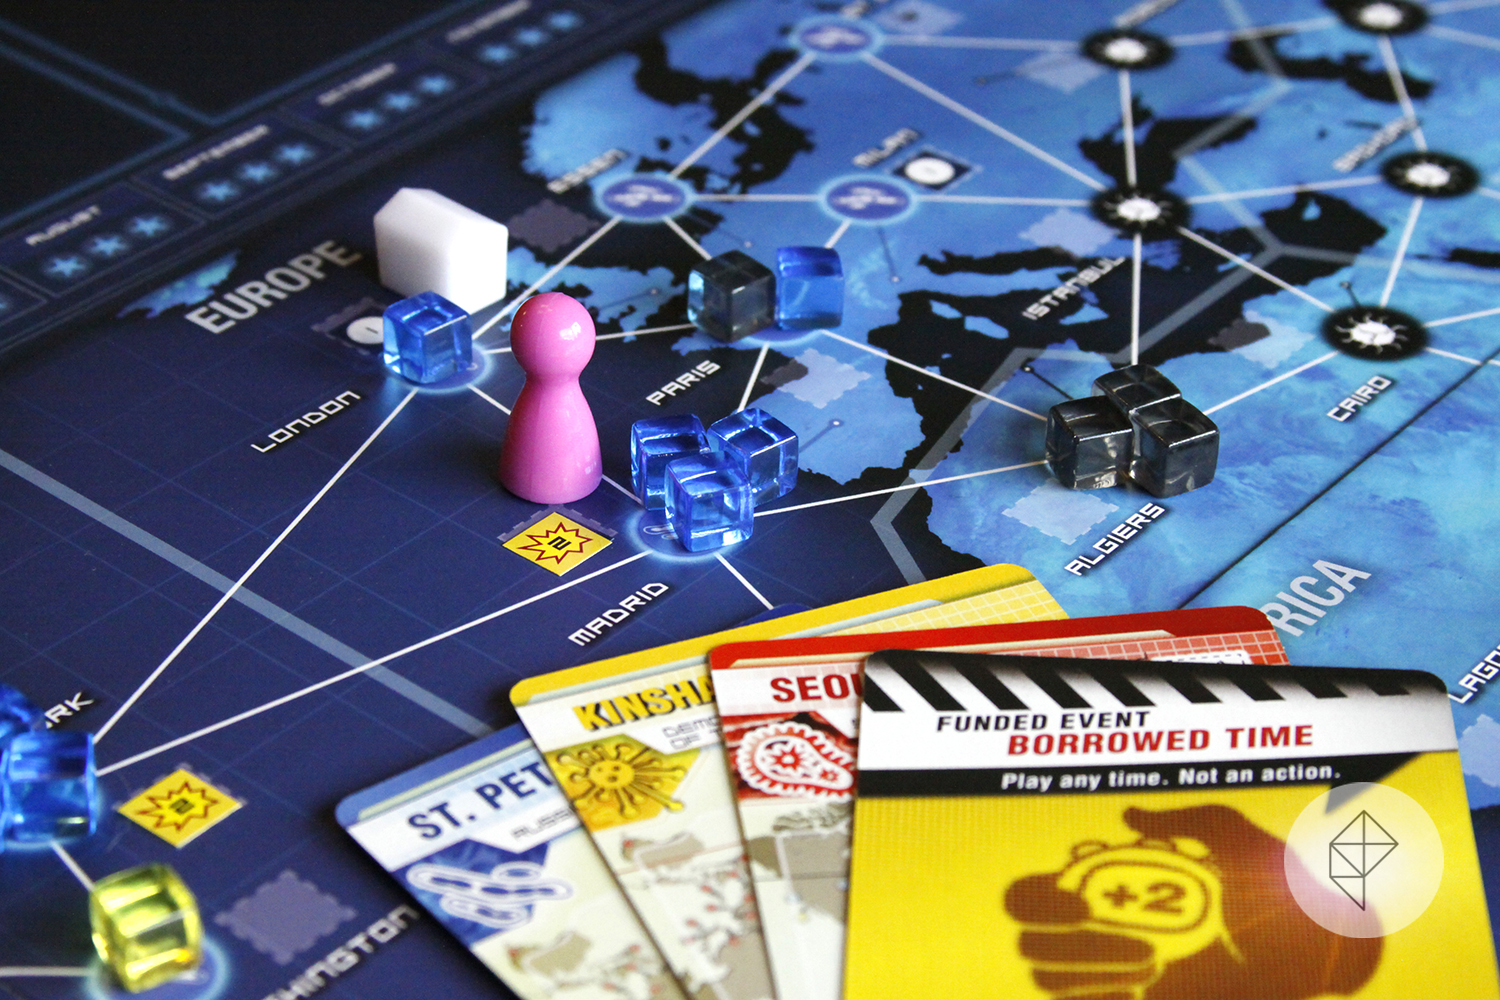 Amazon's Black Friday board game sale takes up to half off bestselling titles